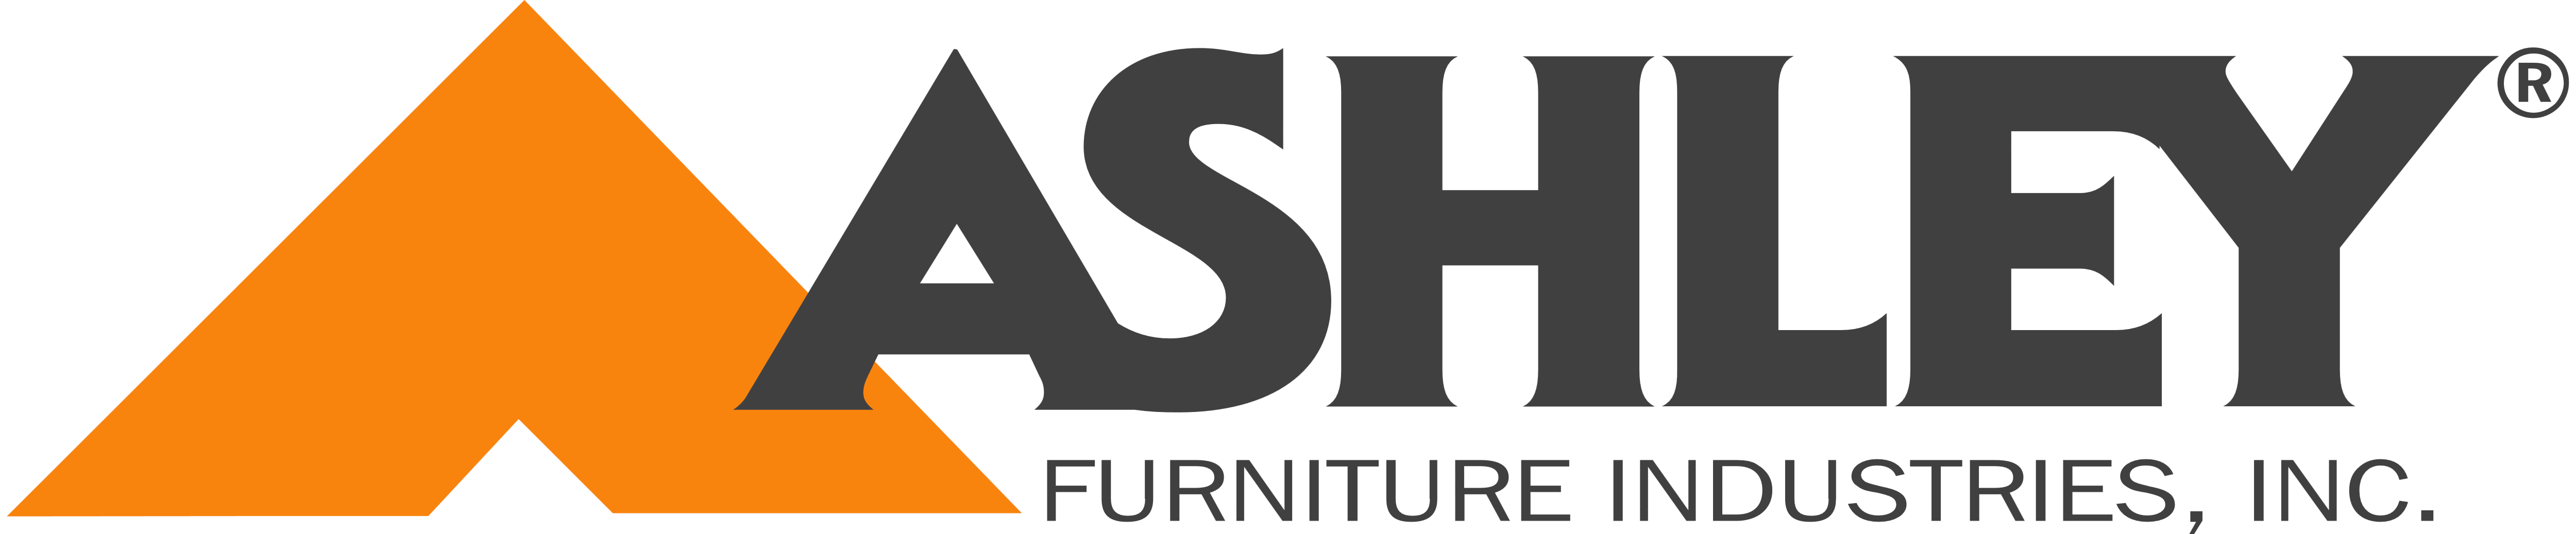 ashley-furniture-logo-png-ashley-furniture-log